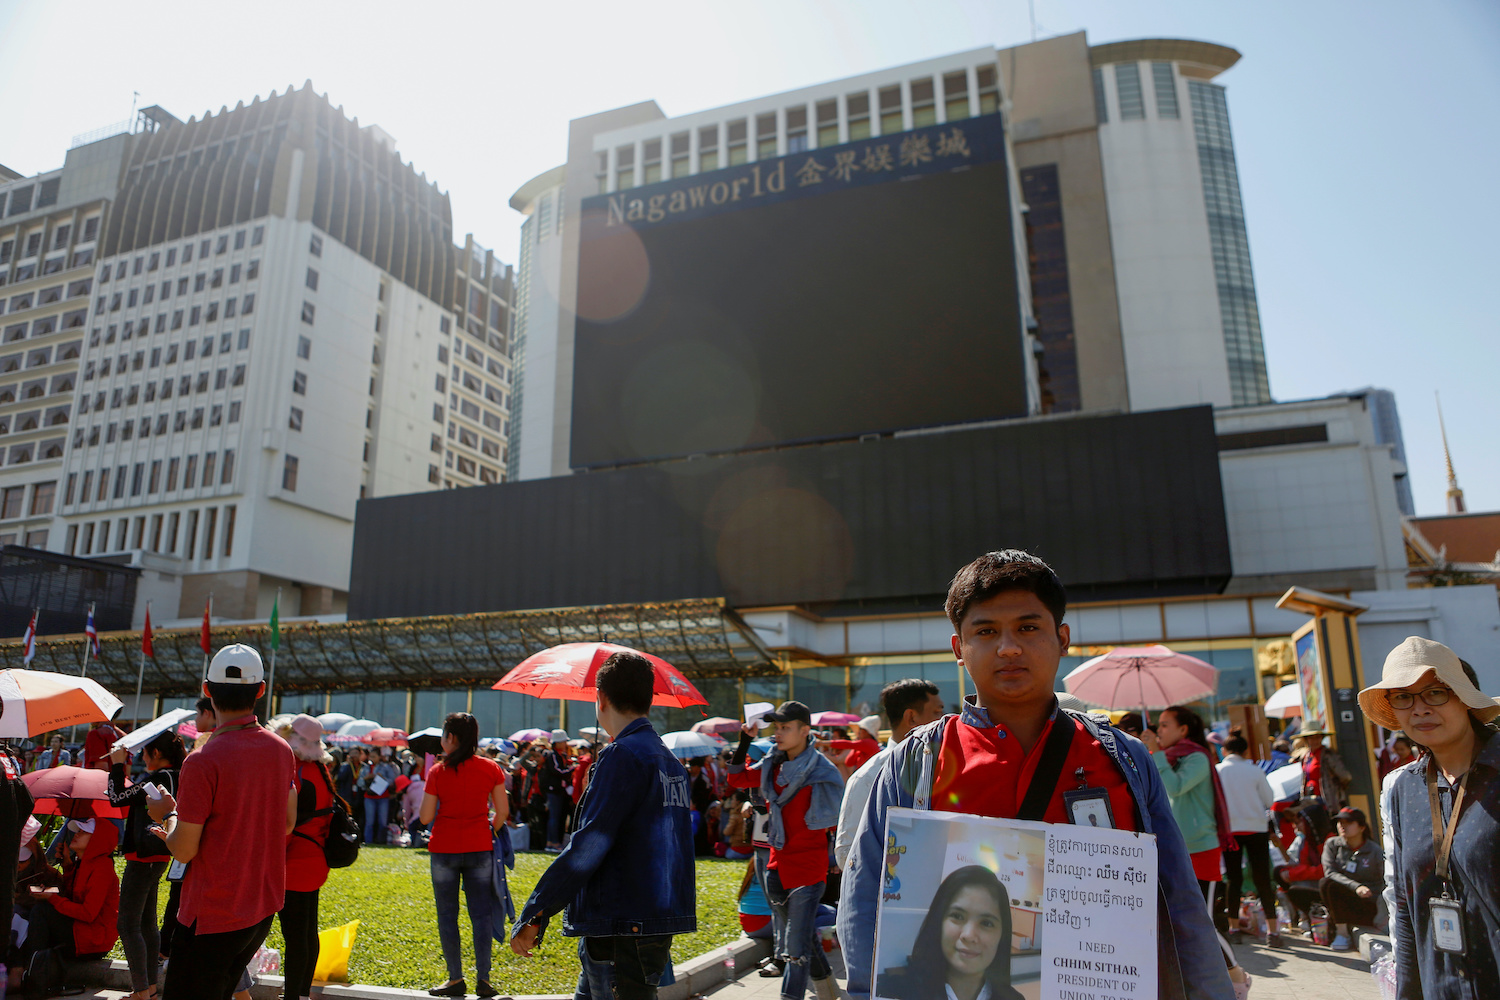 A worker holds up a placard during a protest for higher pay and better working conditions in front of the NagaWorld hotel and casino complex in Phnom Penh on Thursday. (Reuters Photo)